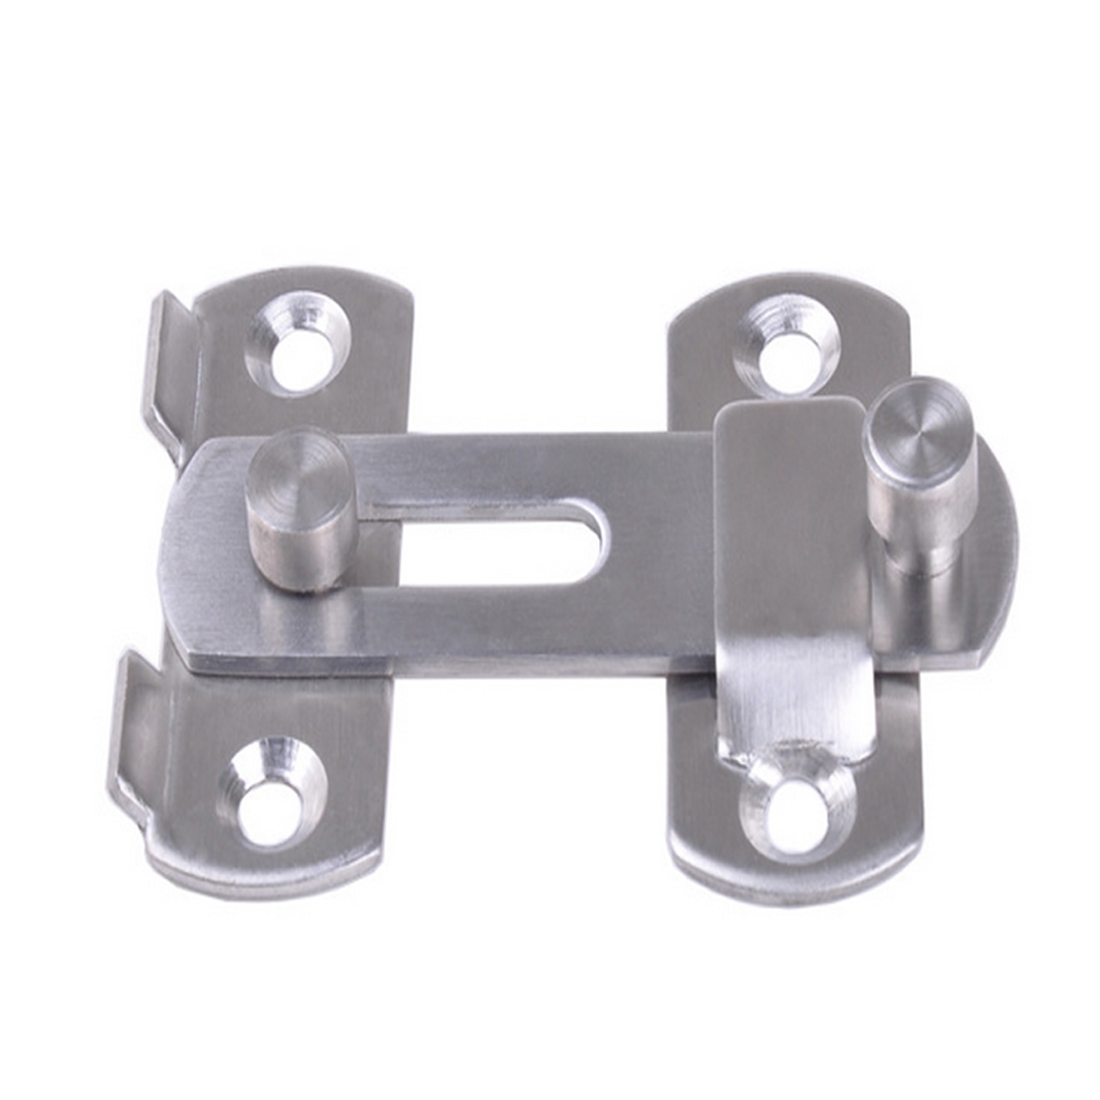 Hasp Latch Stainless Steel Hasp Latch Lock Sliding Door